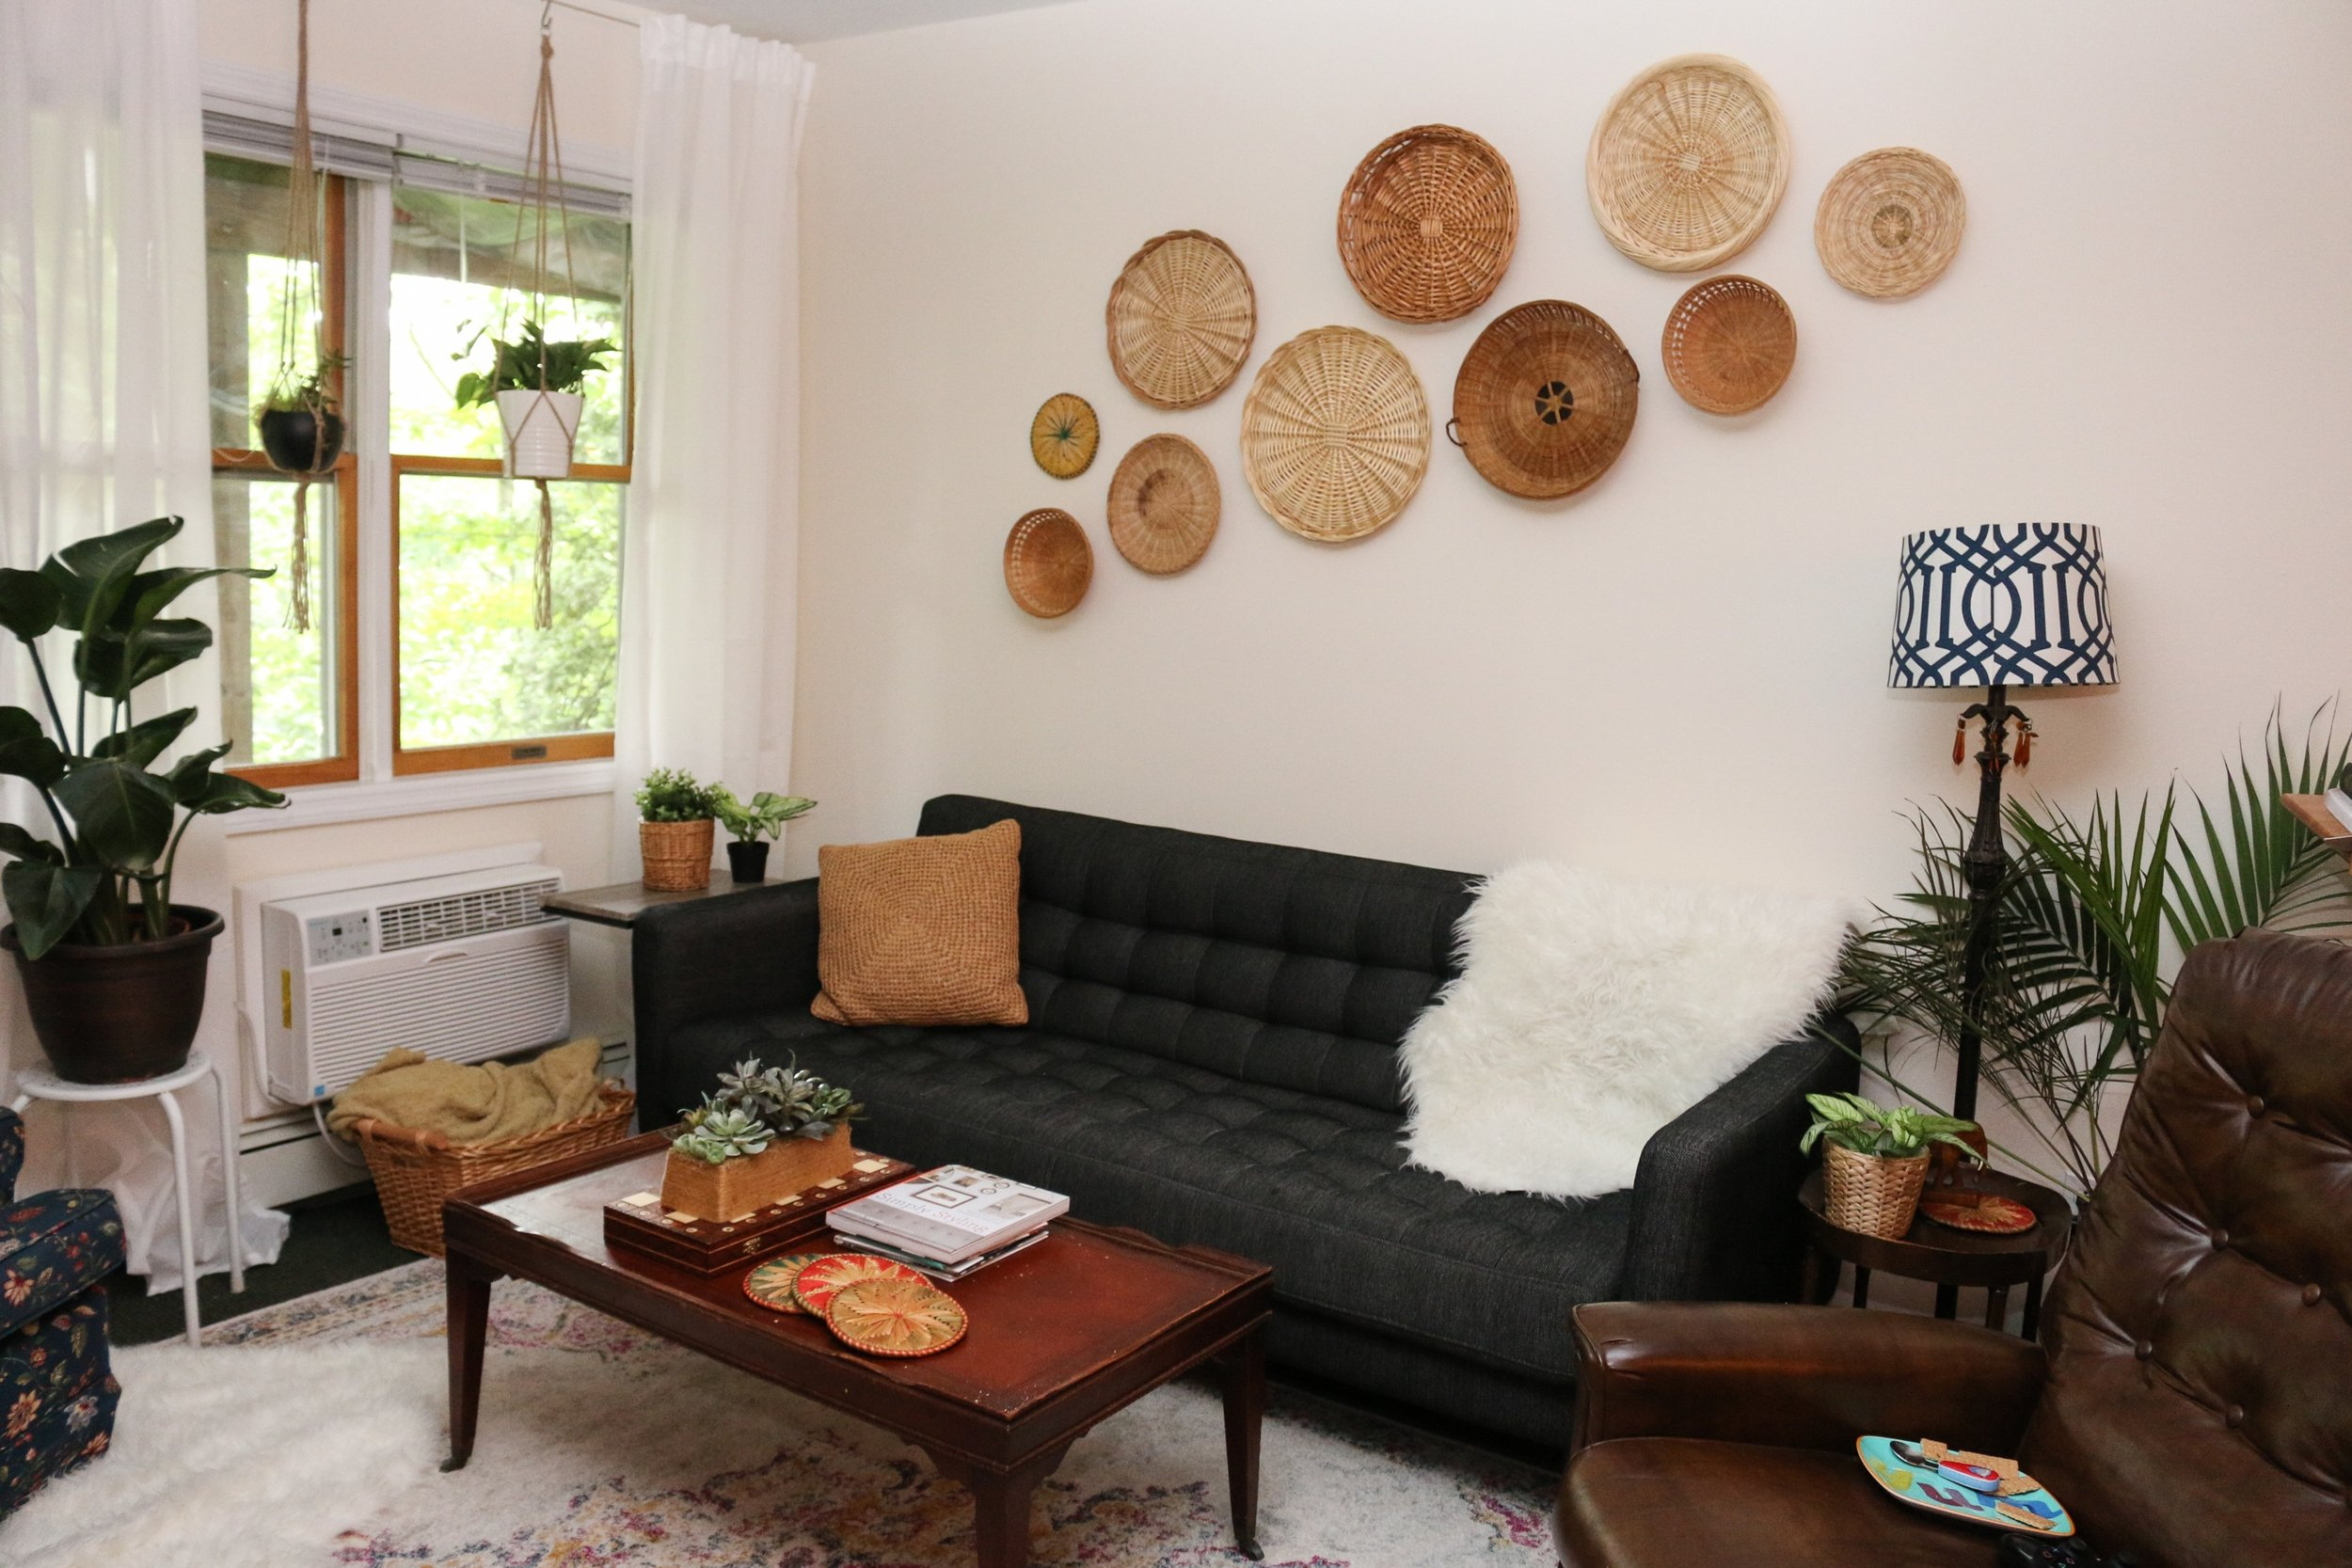 I love collecting wooden, wicker, and rattan items, along with fake plants (can't keep anything alive these days), and a mixture of patterns to create my boho style!